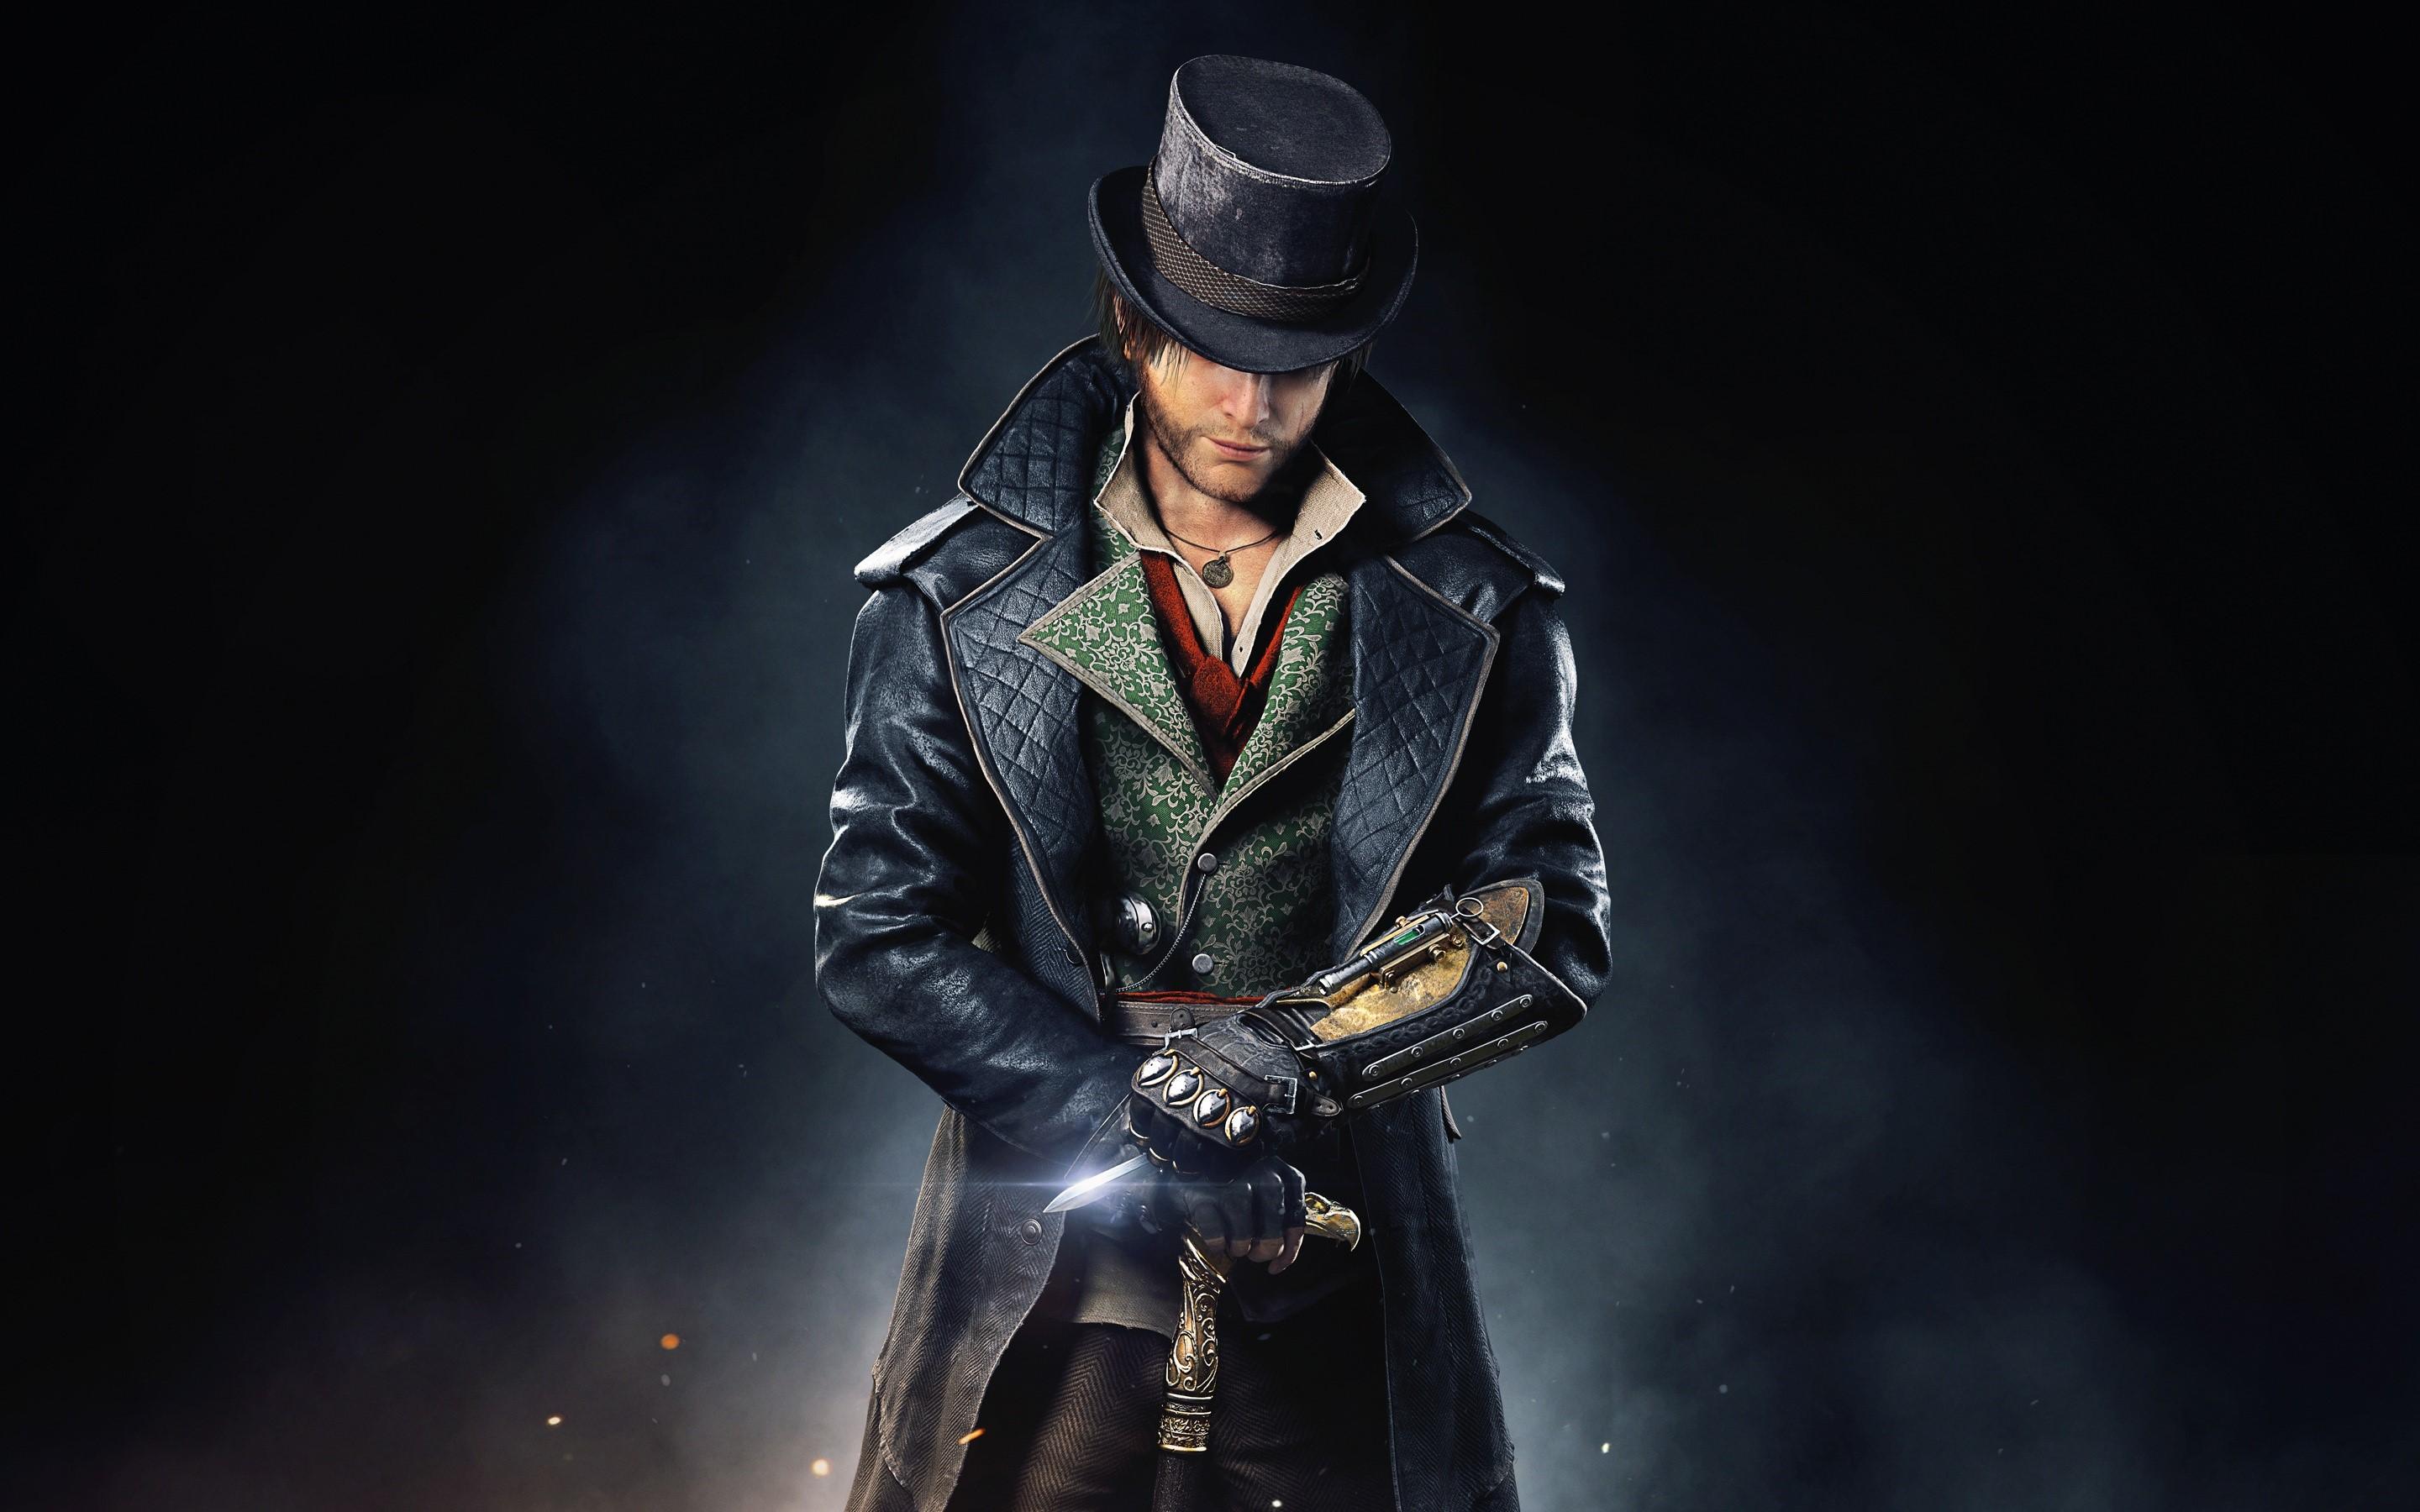 Jacob Frye Assassins Creed Syndicate Wallpaper Id 1507